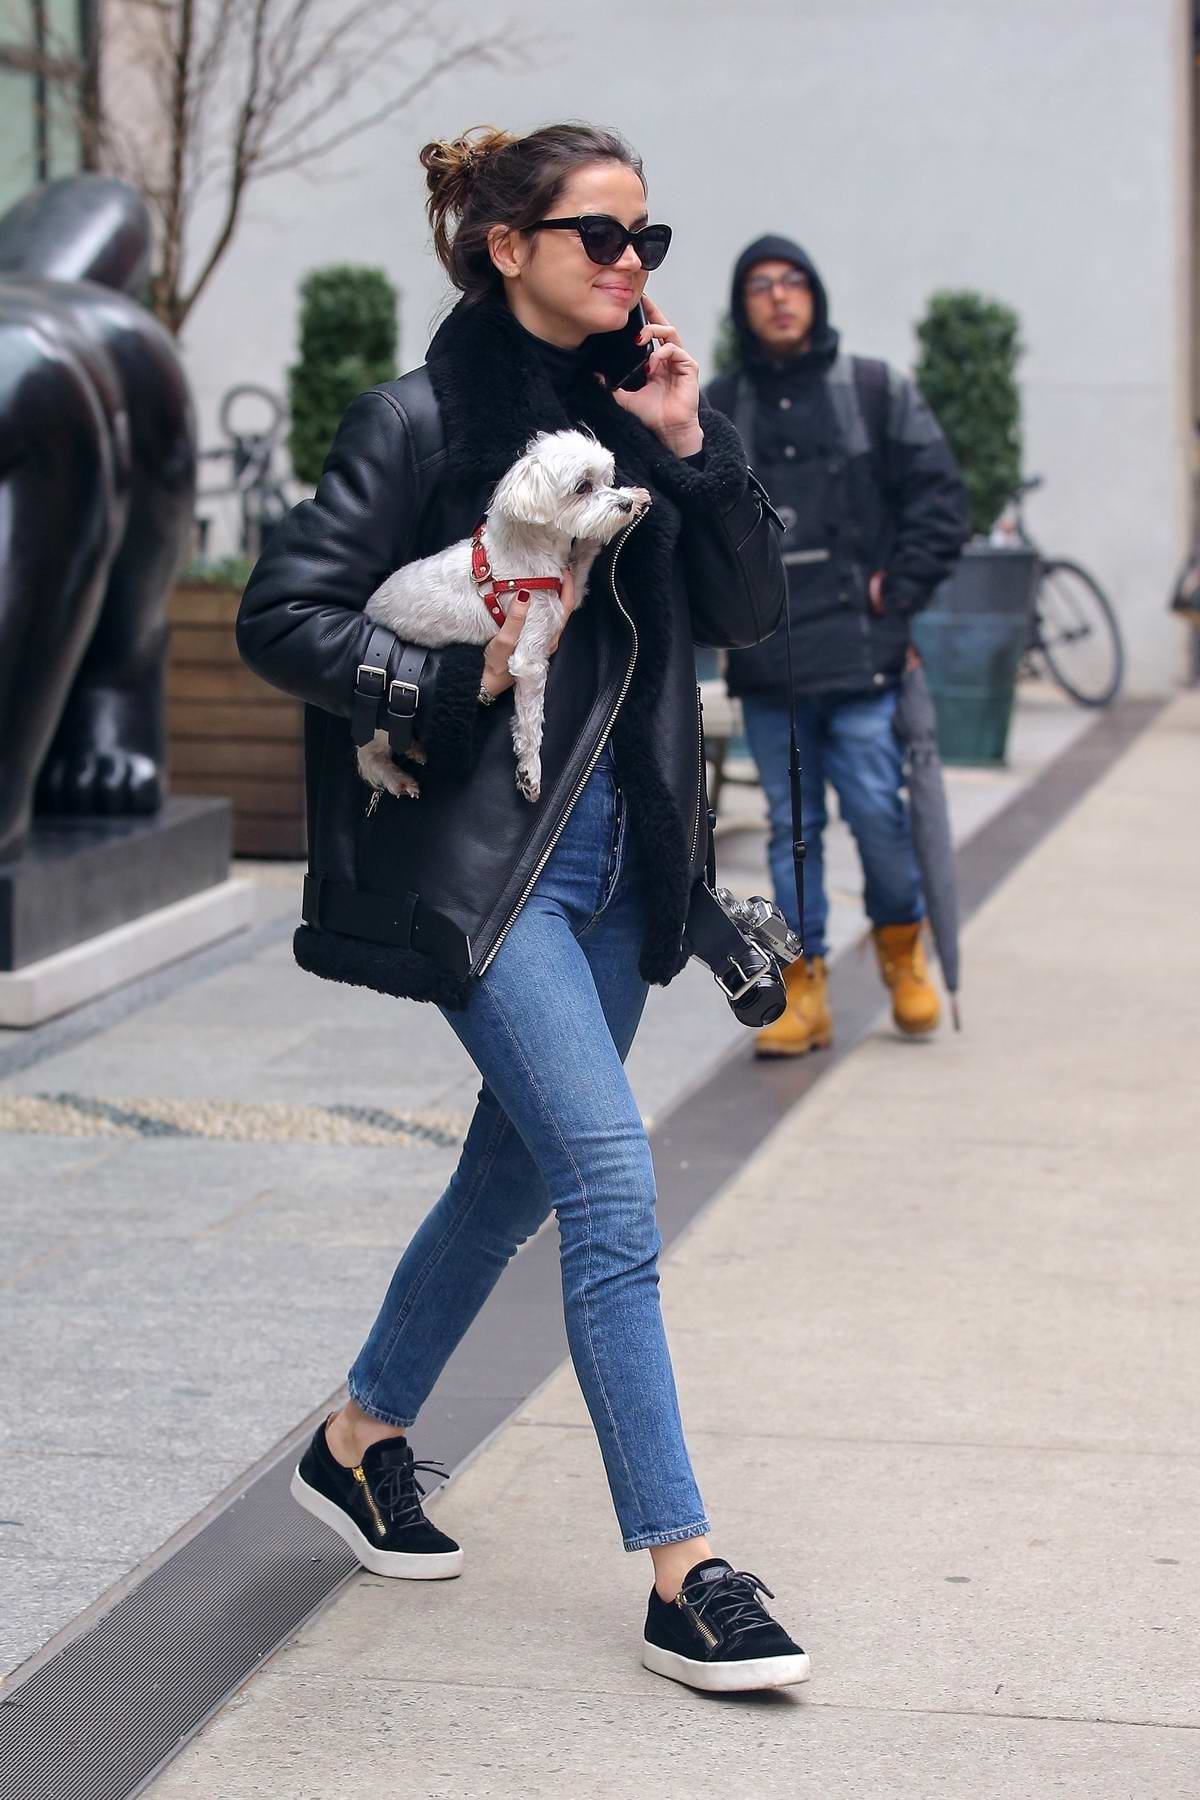 Ana de Armas looks lovely as she steps out for a stroll with a friend in New York City